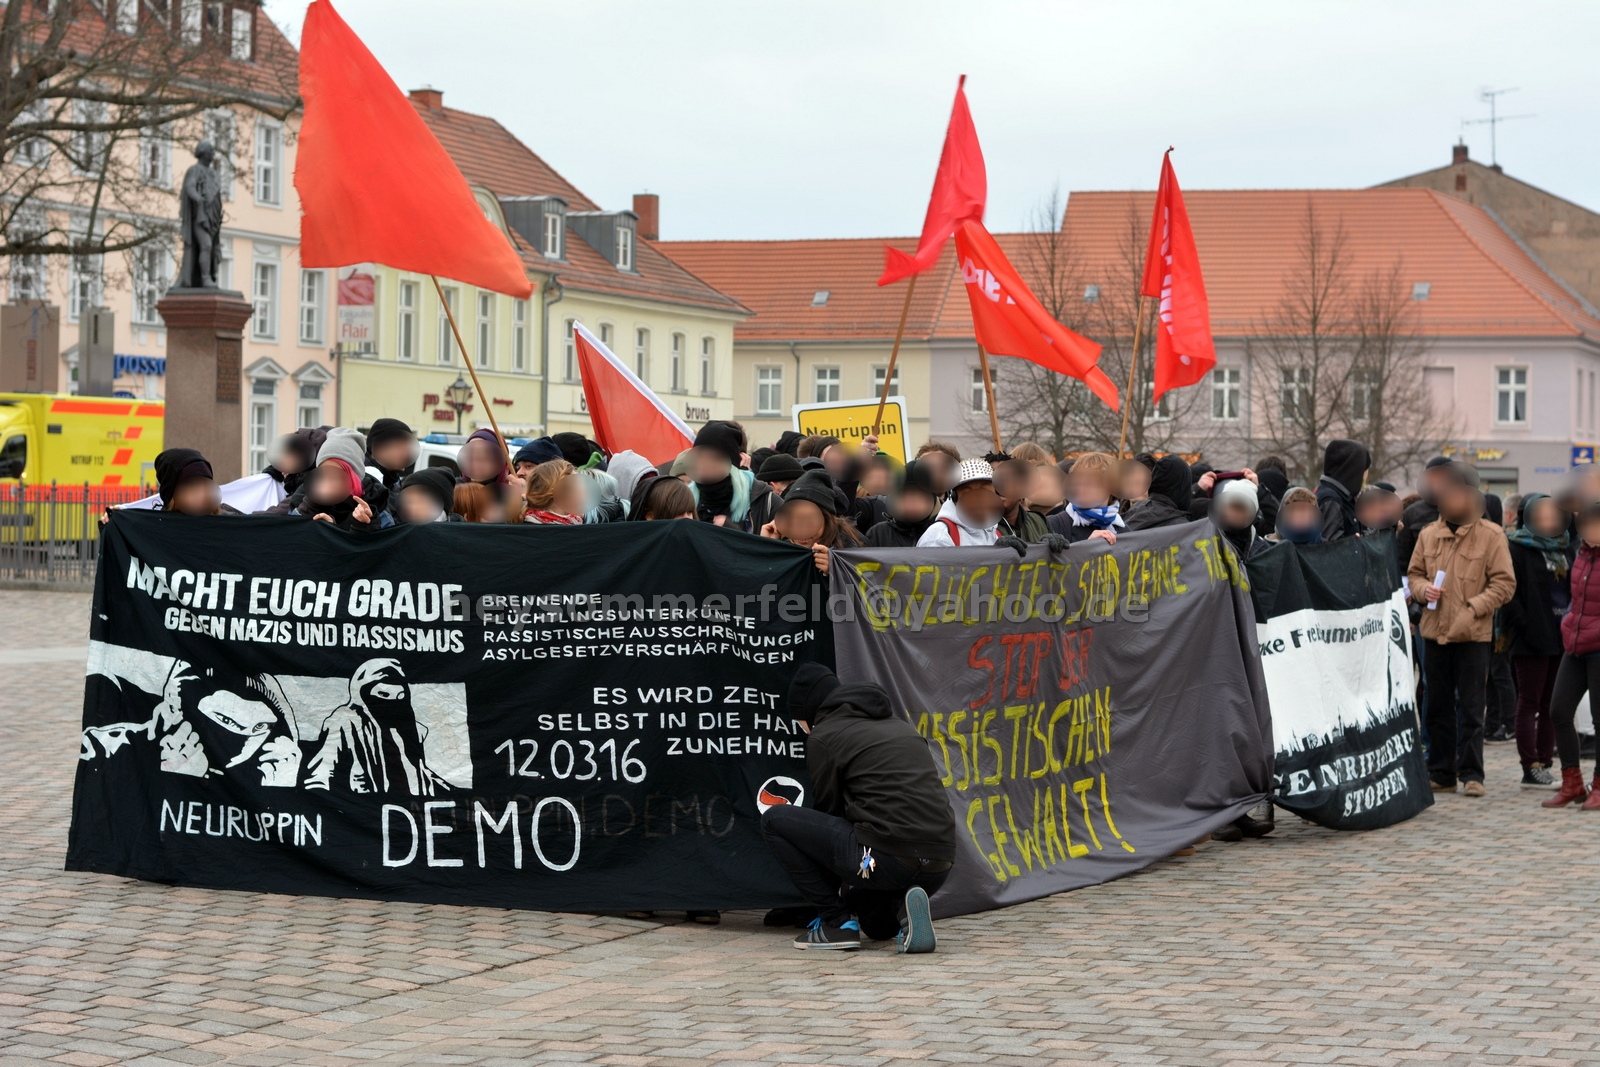 Antifaschistische Demonstration in Neuruppin. Bild: Ney Sommerfeld.